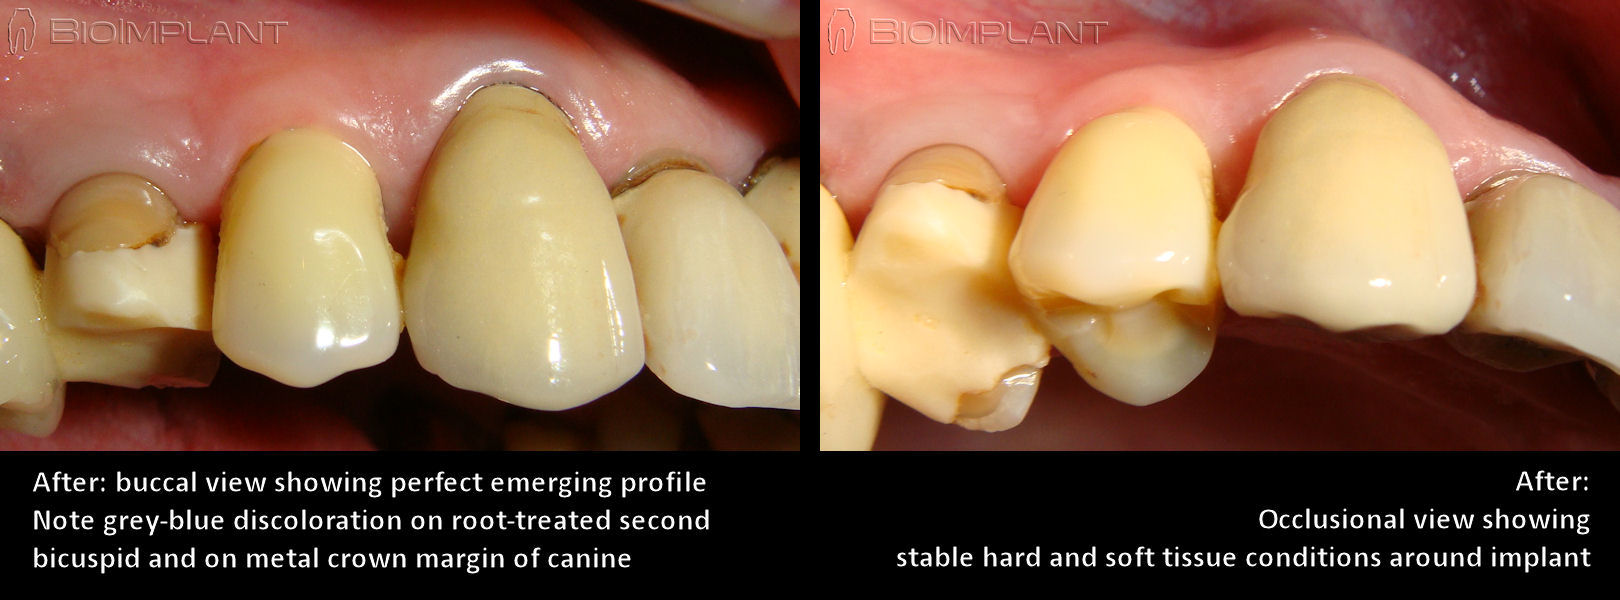 anatomic_zirconia_implant_emerging_profile_buccal_occlusional_view